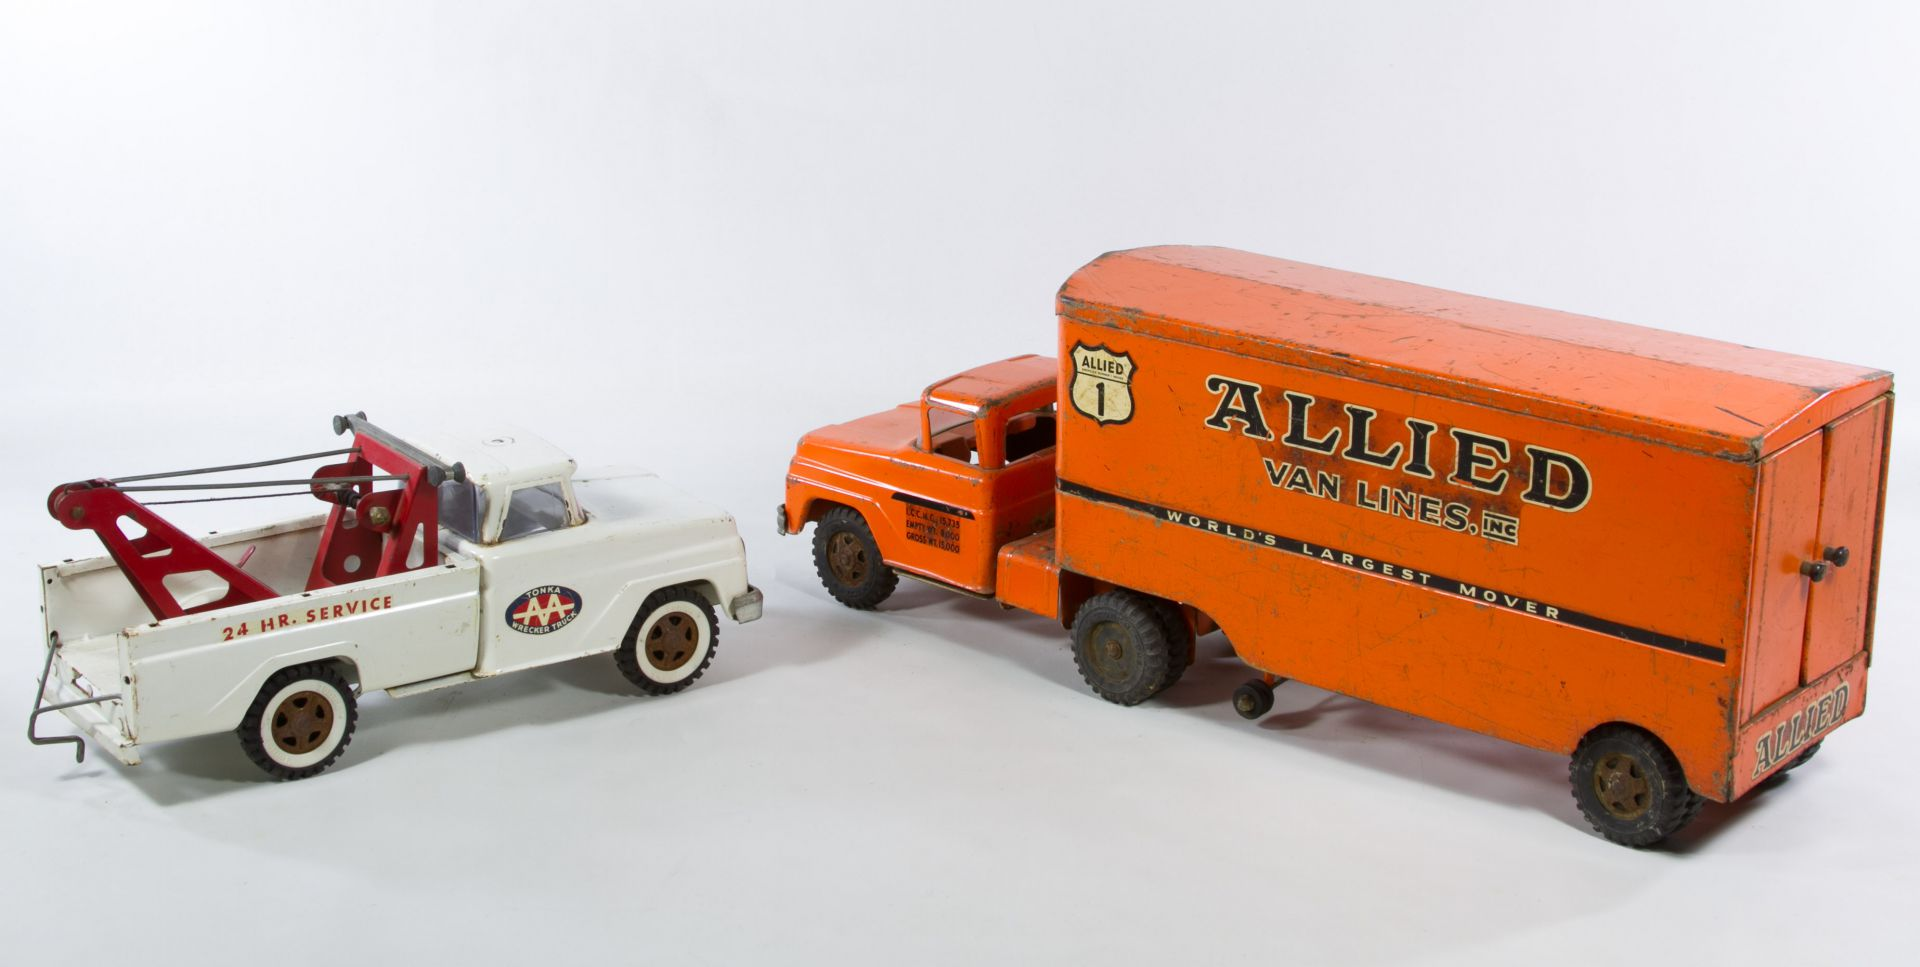 Toy Moving Truck Lot 659 Allied Van Lines Toy Moving Truck Leonard